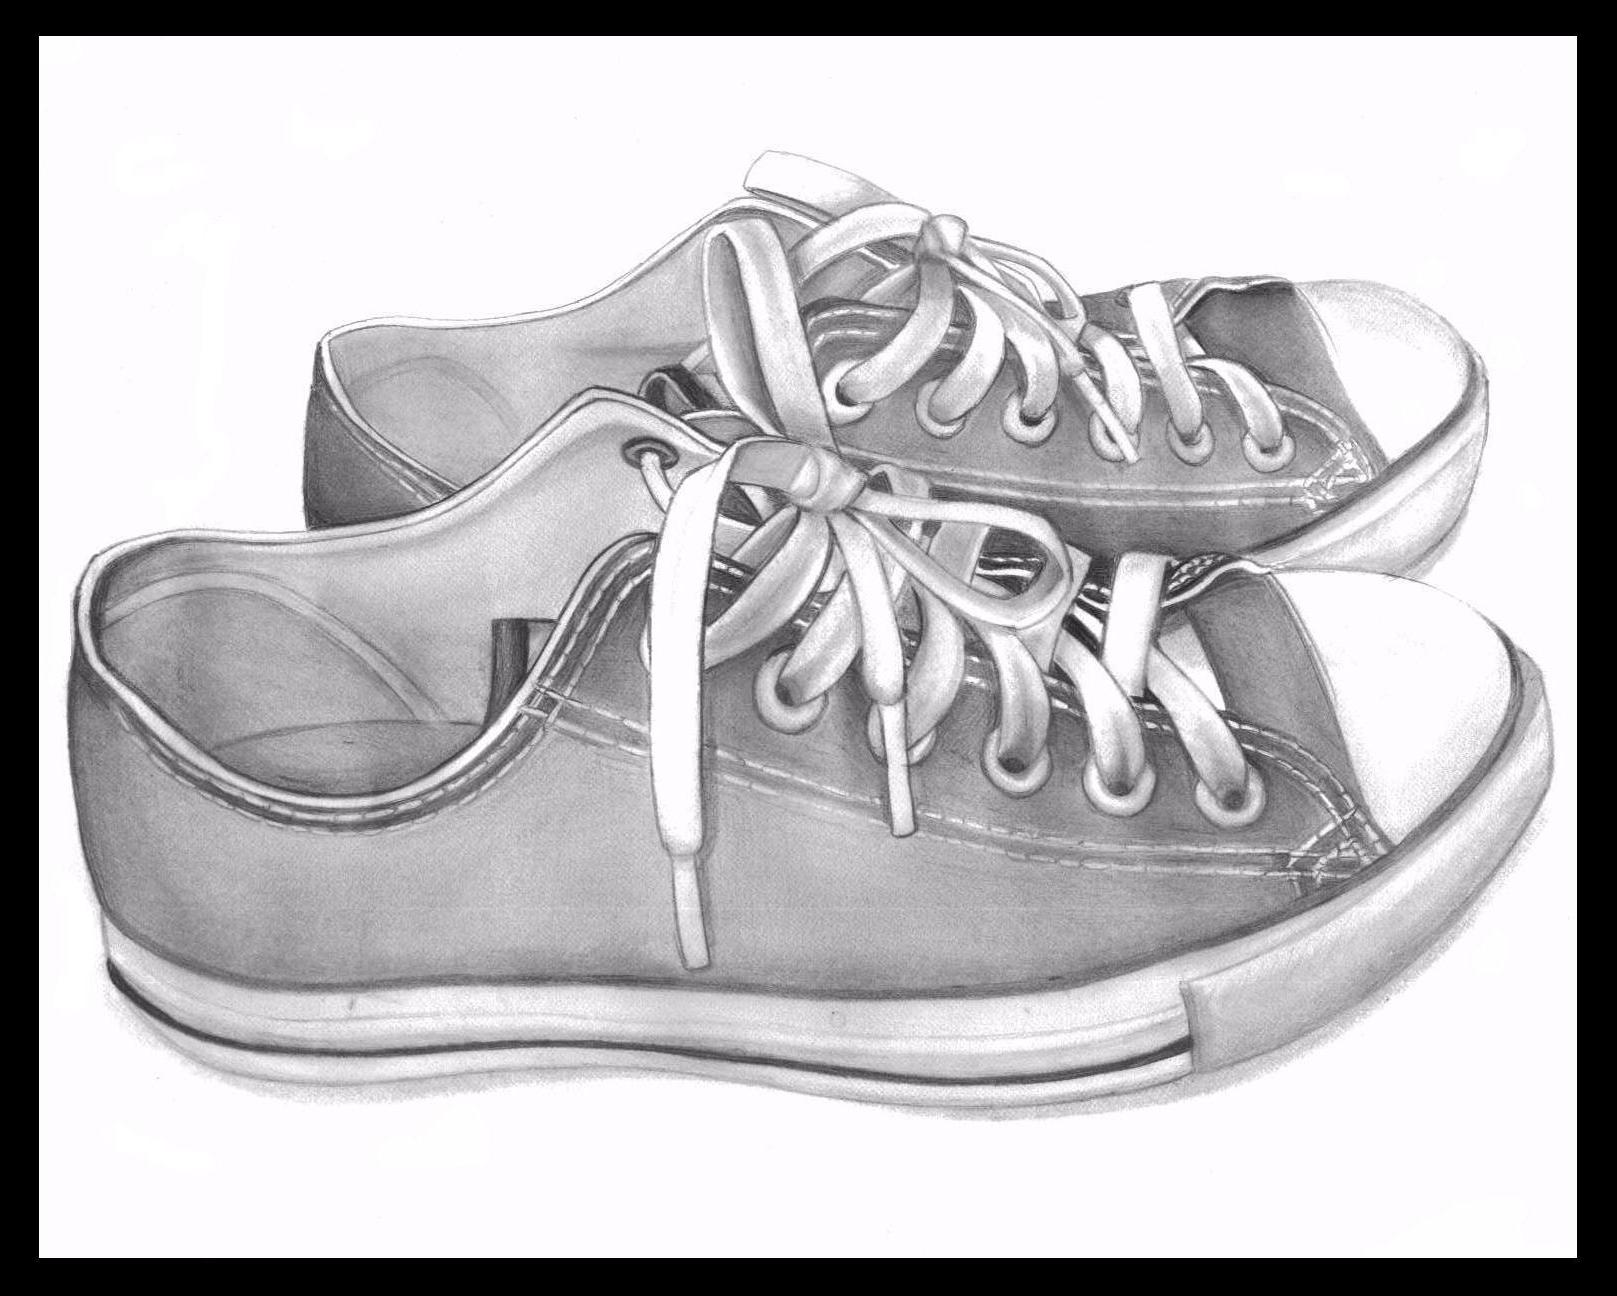 Drawn converse shoe Becuo Becuo Drawings Converse Images